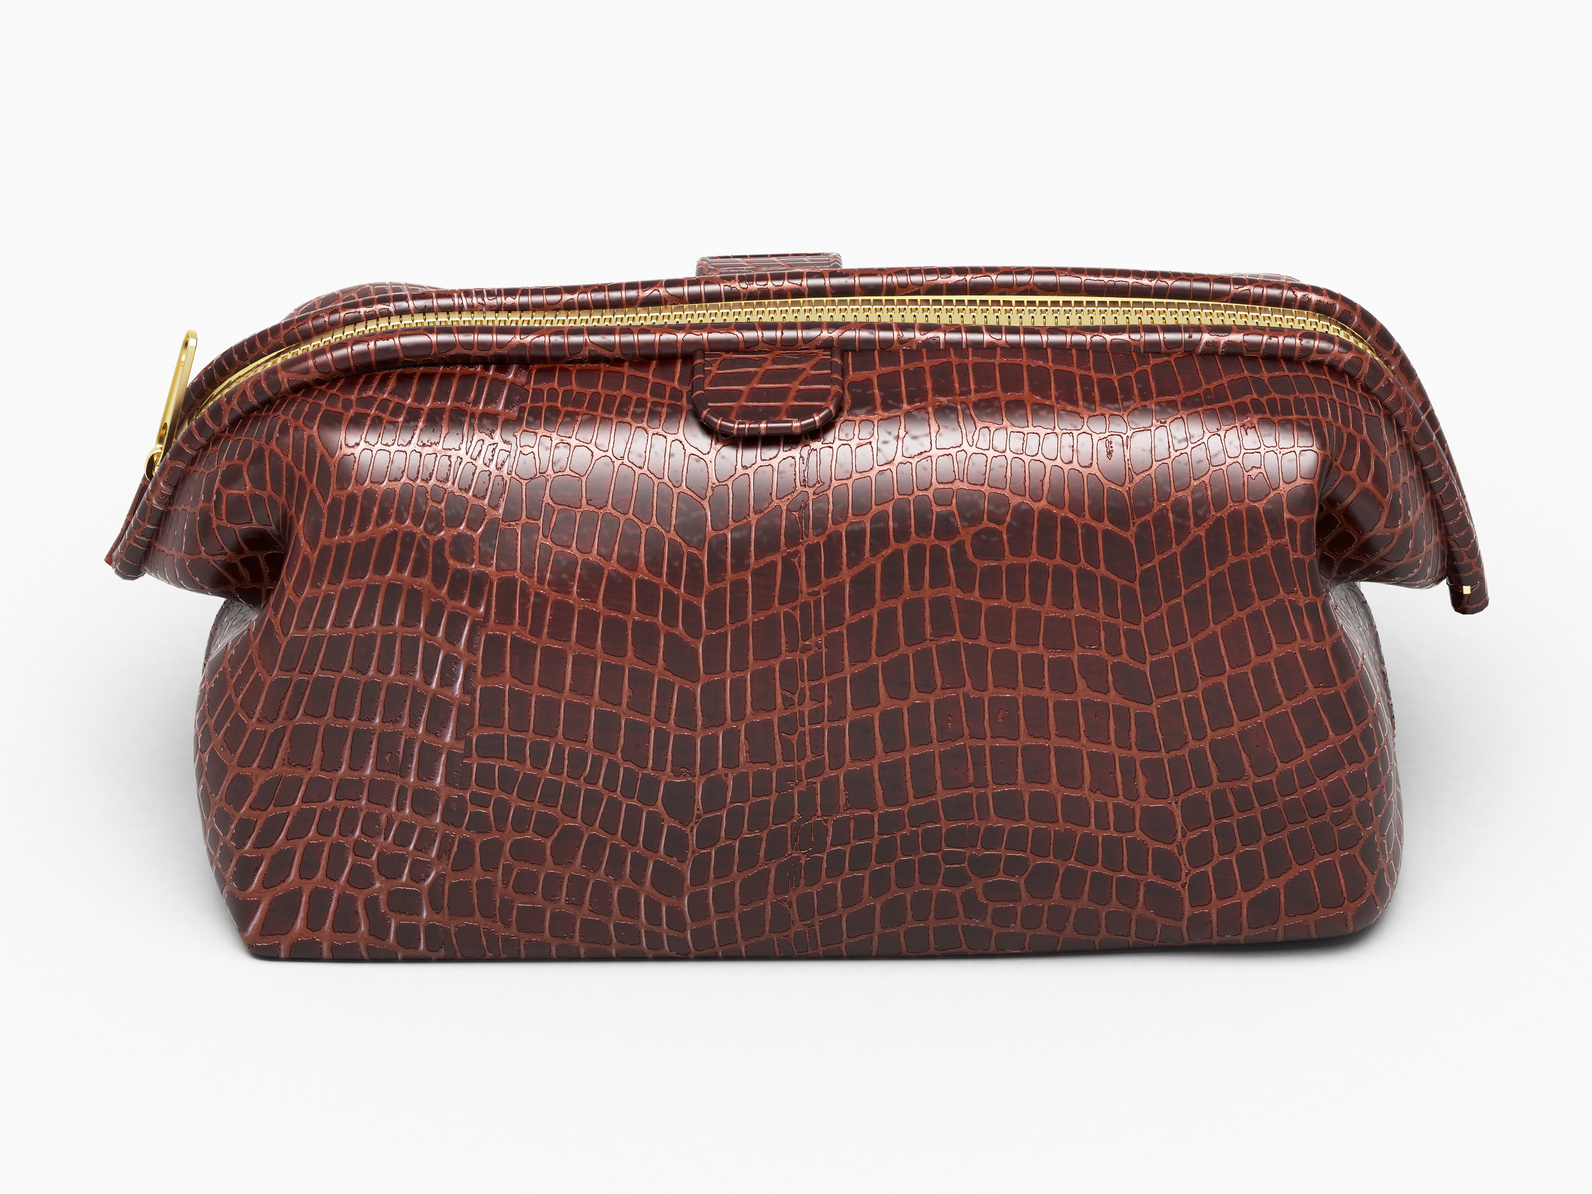 Alligator leather bags are in high demand in the fashion world, with price tags of tens of thousands of dollars and waiting lists over half a decade long, it's little wonder the big fashion houses are in a rush to get their hands on top-quality materials to speed up the process and make more sales.